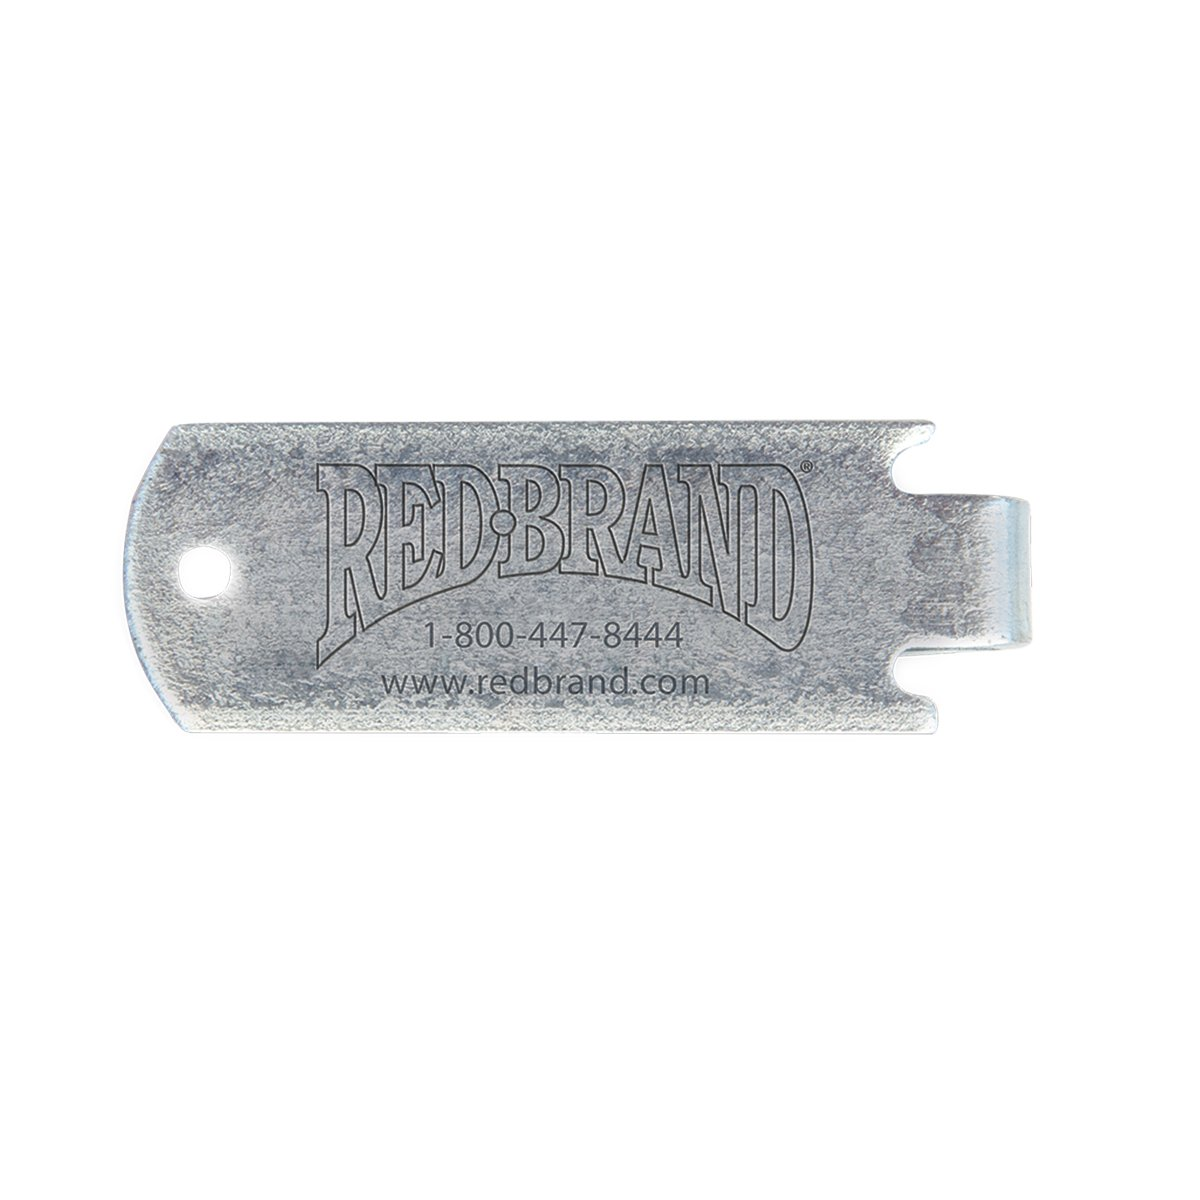 Red Brand Fence Wire Twisting Tool - Made in USA